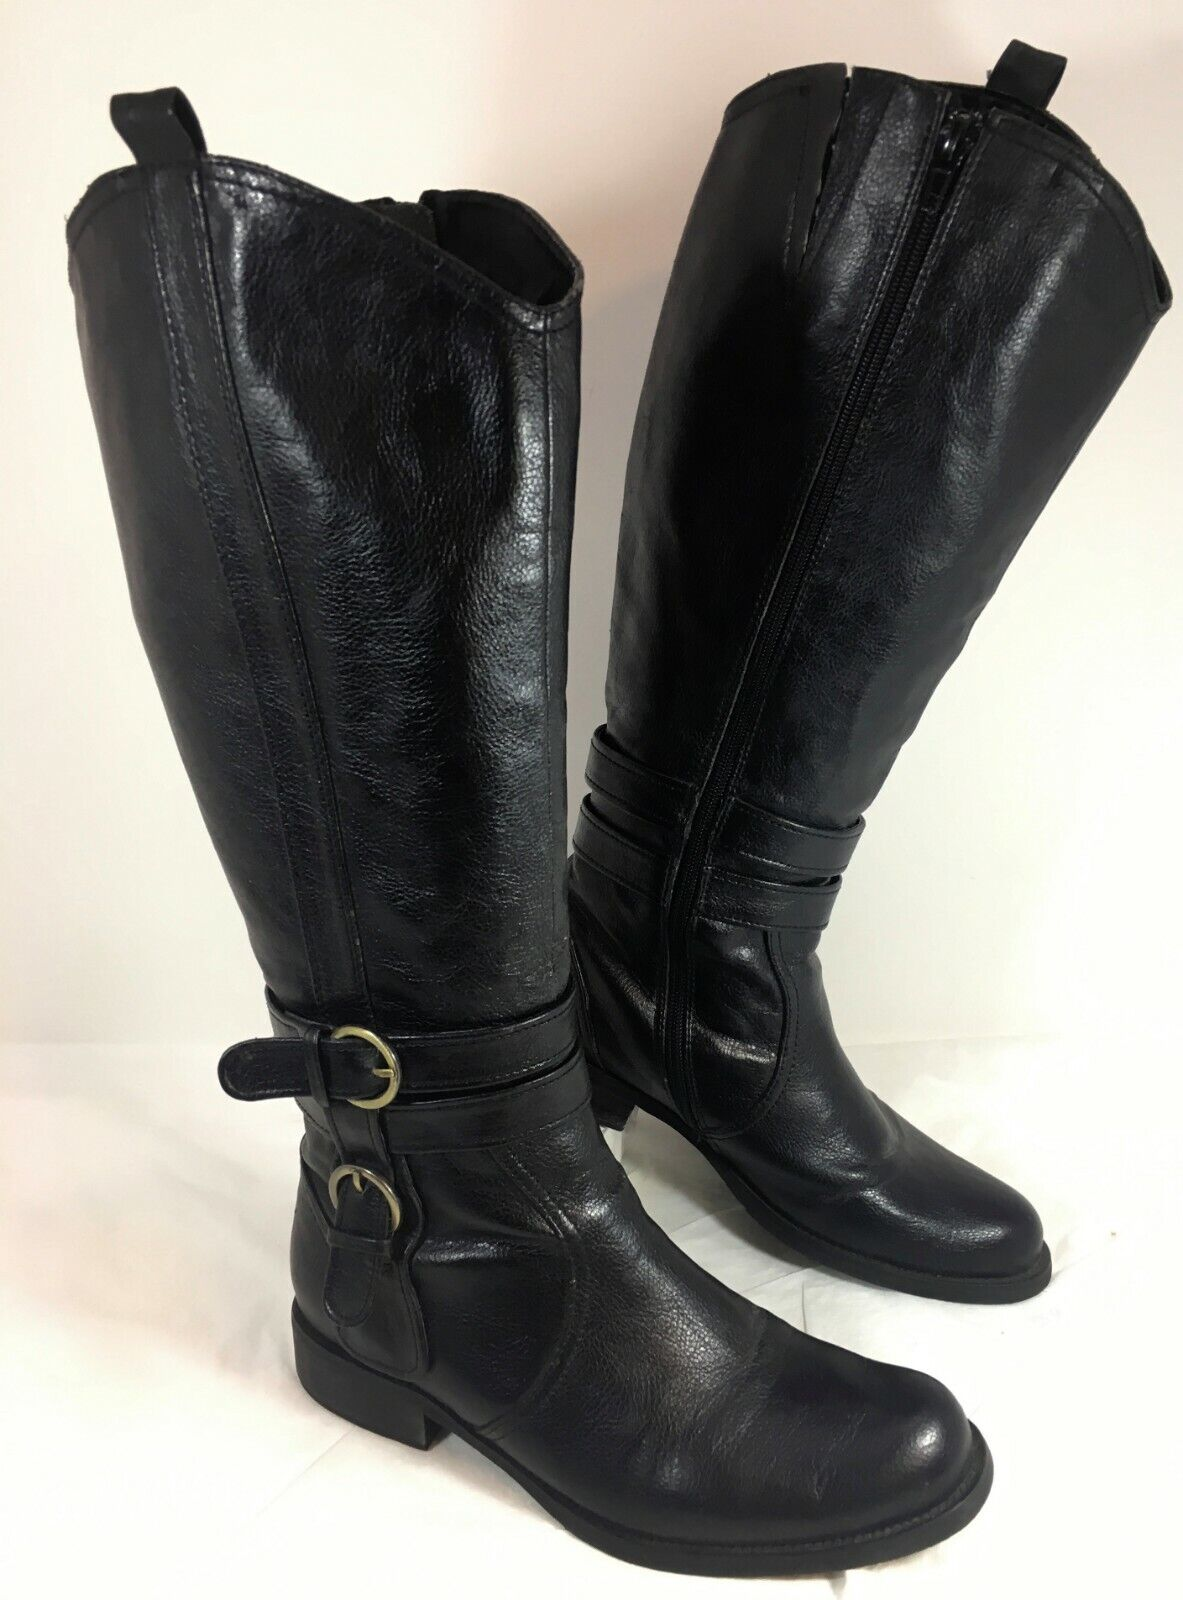 M2 Miz Mooz Riding Style Black Faux leather Knee High Boots Sz 7.5